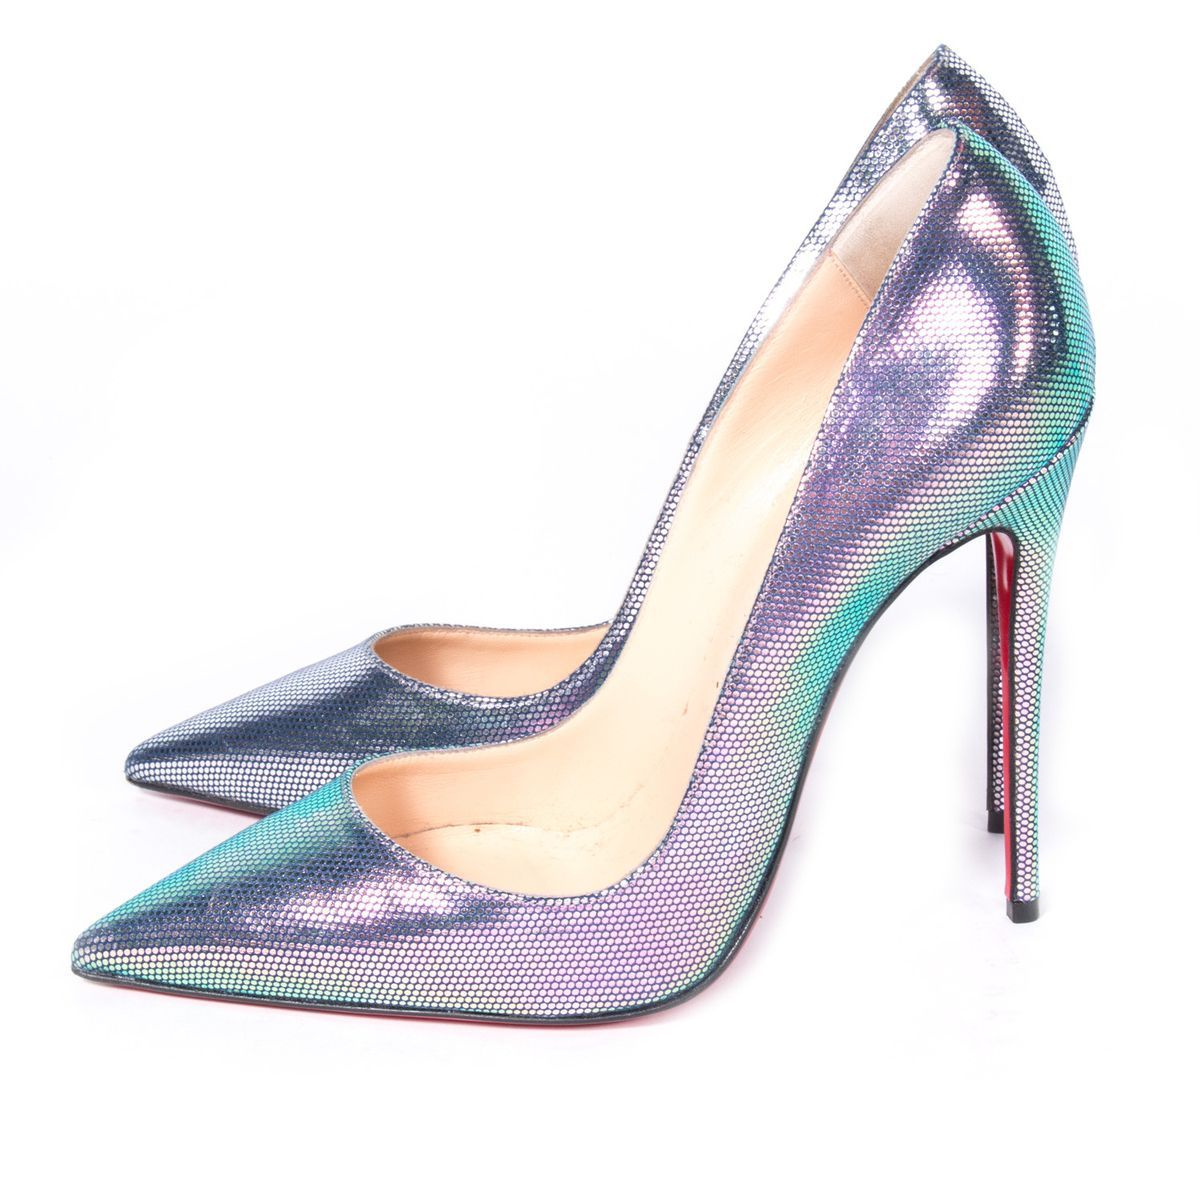 Christian Louboutin Beige Patent Leather So Kate Pumps